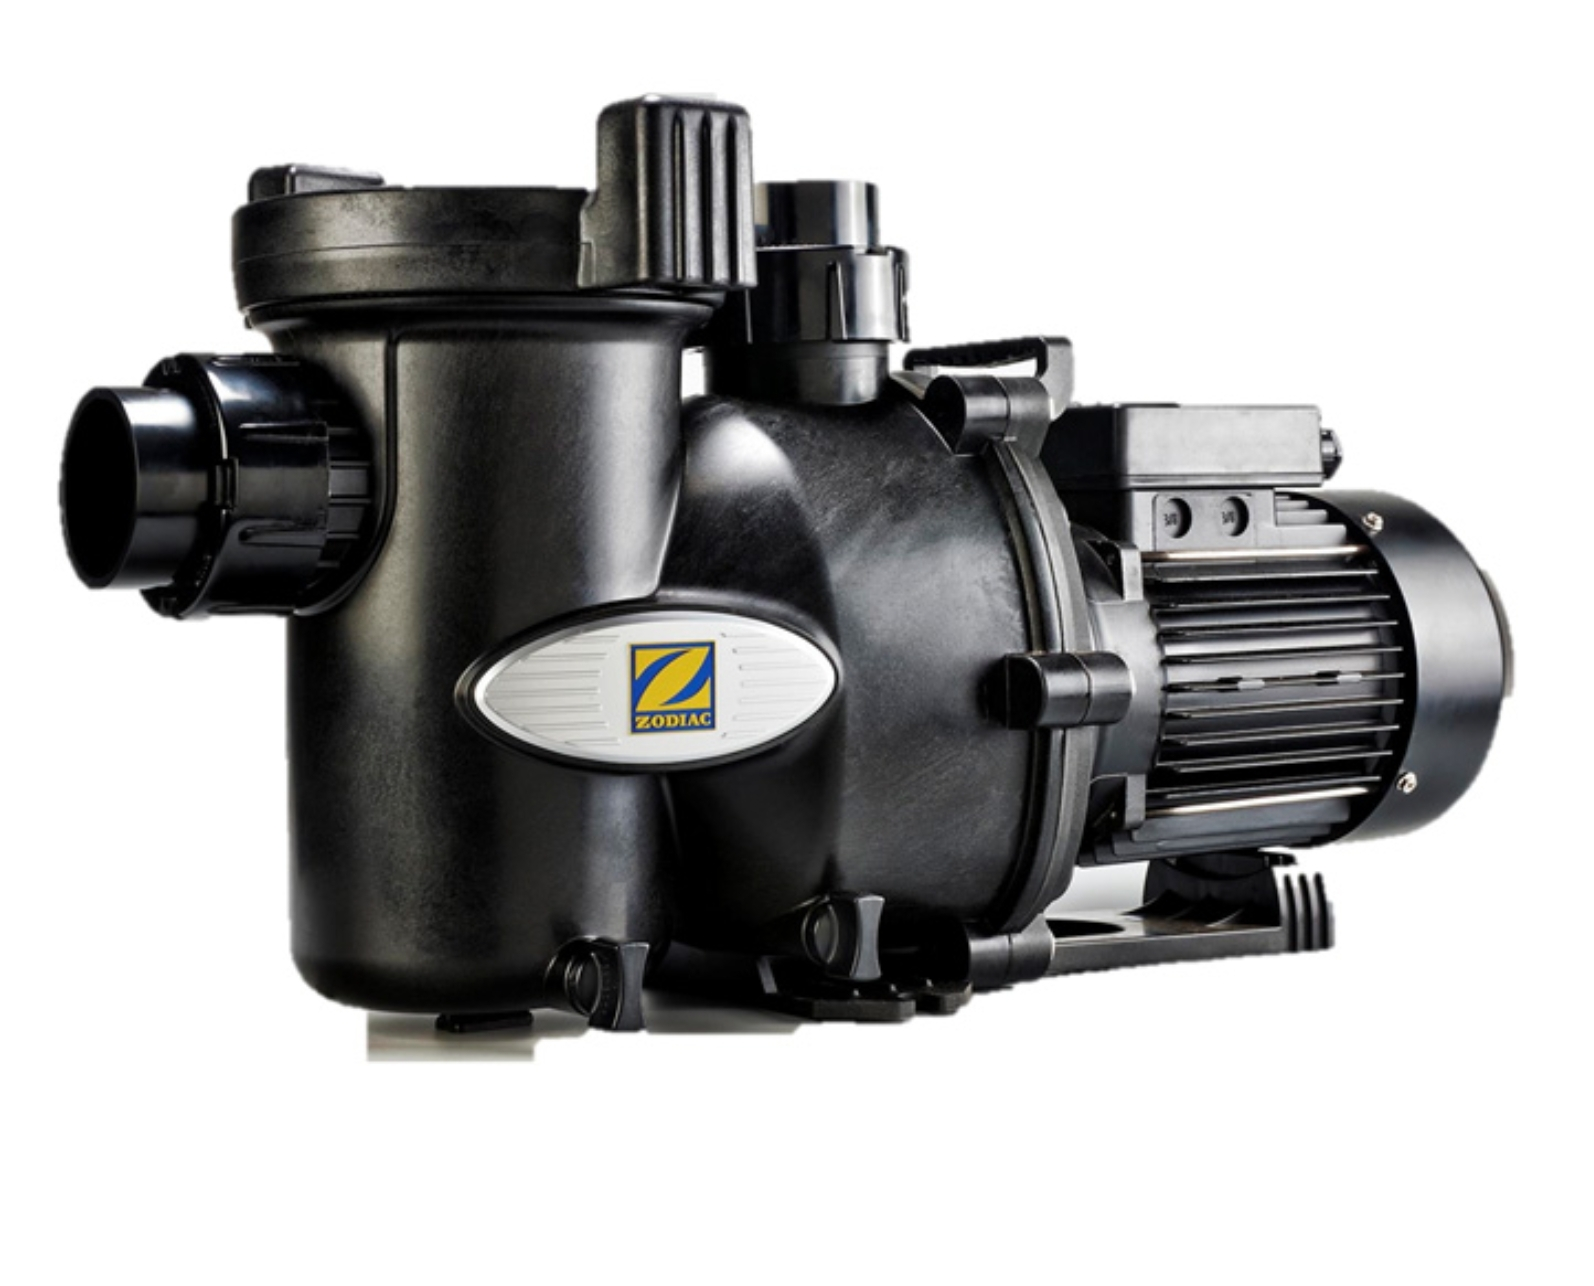 zodiac-pump-and-motor